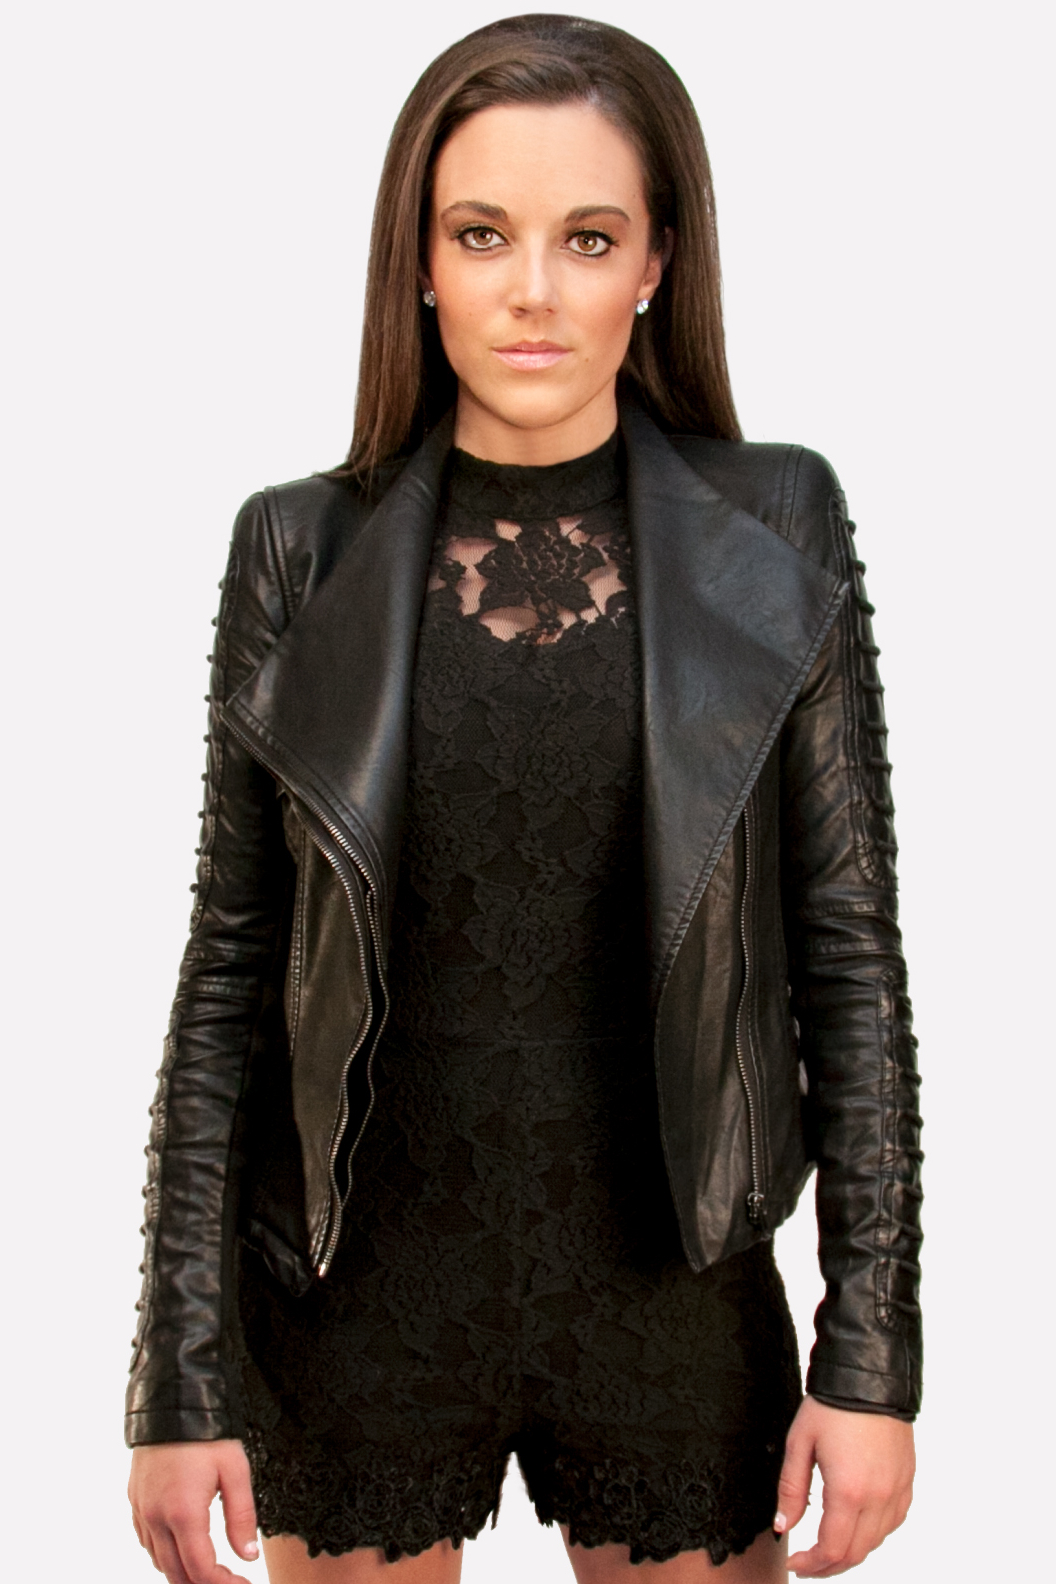 Gracia black leather jacket very trendy by gracia